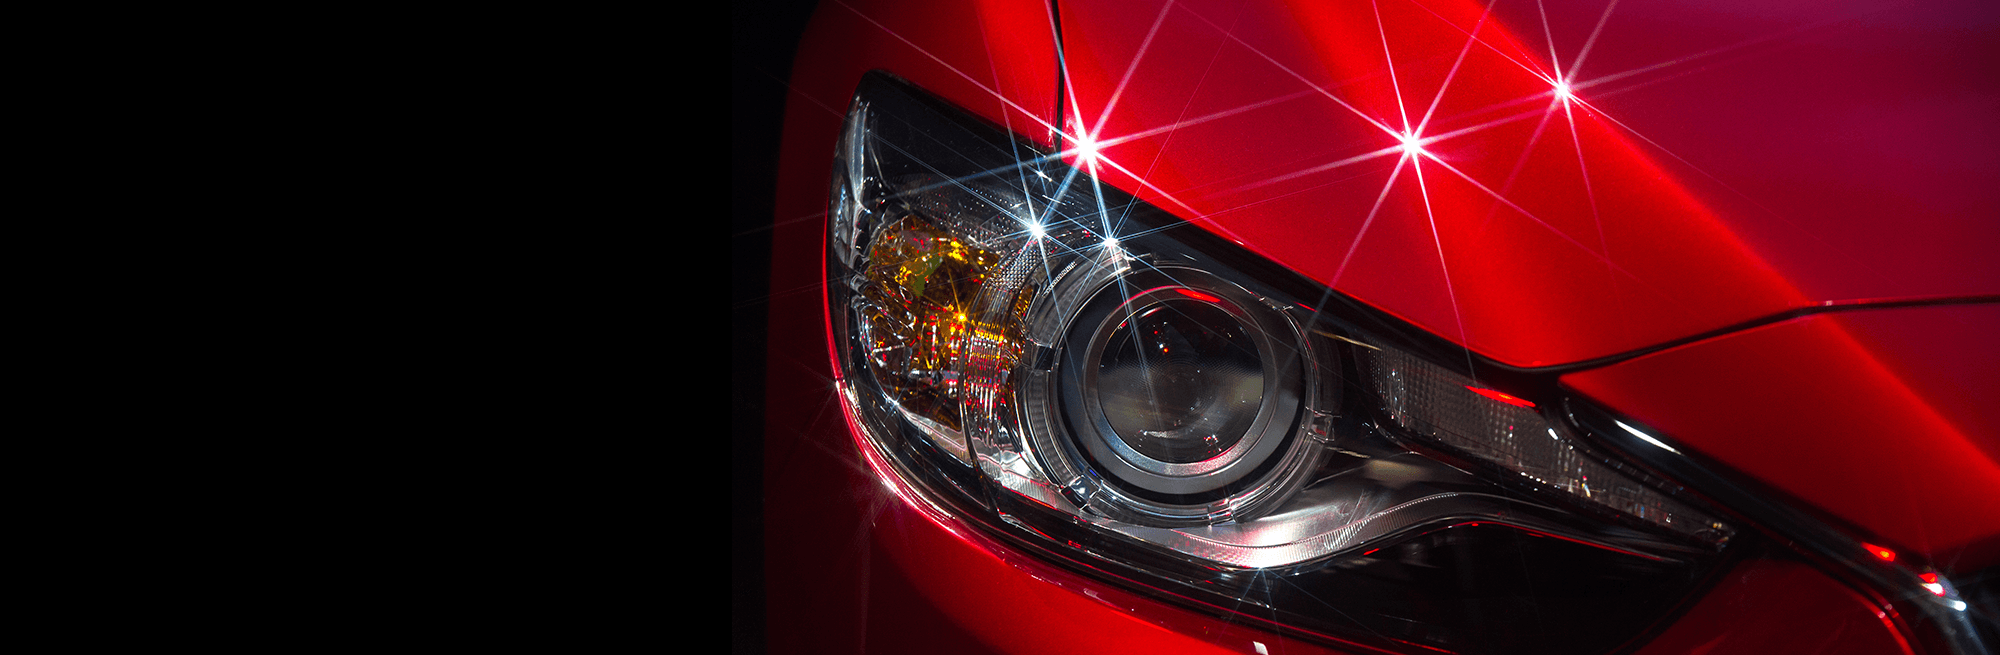 A red car's headlight.